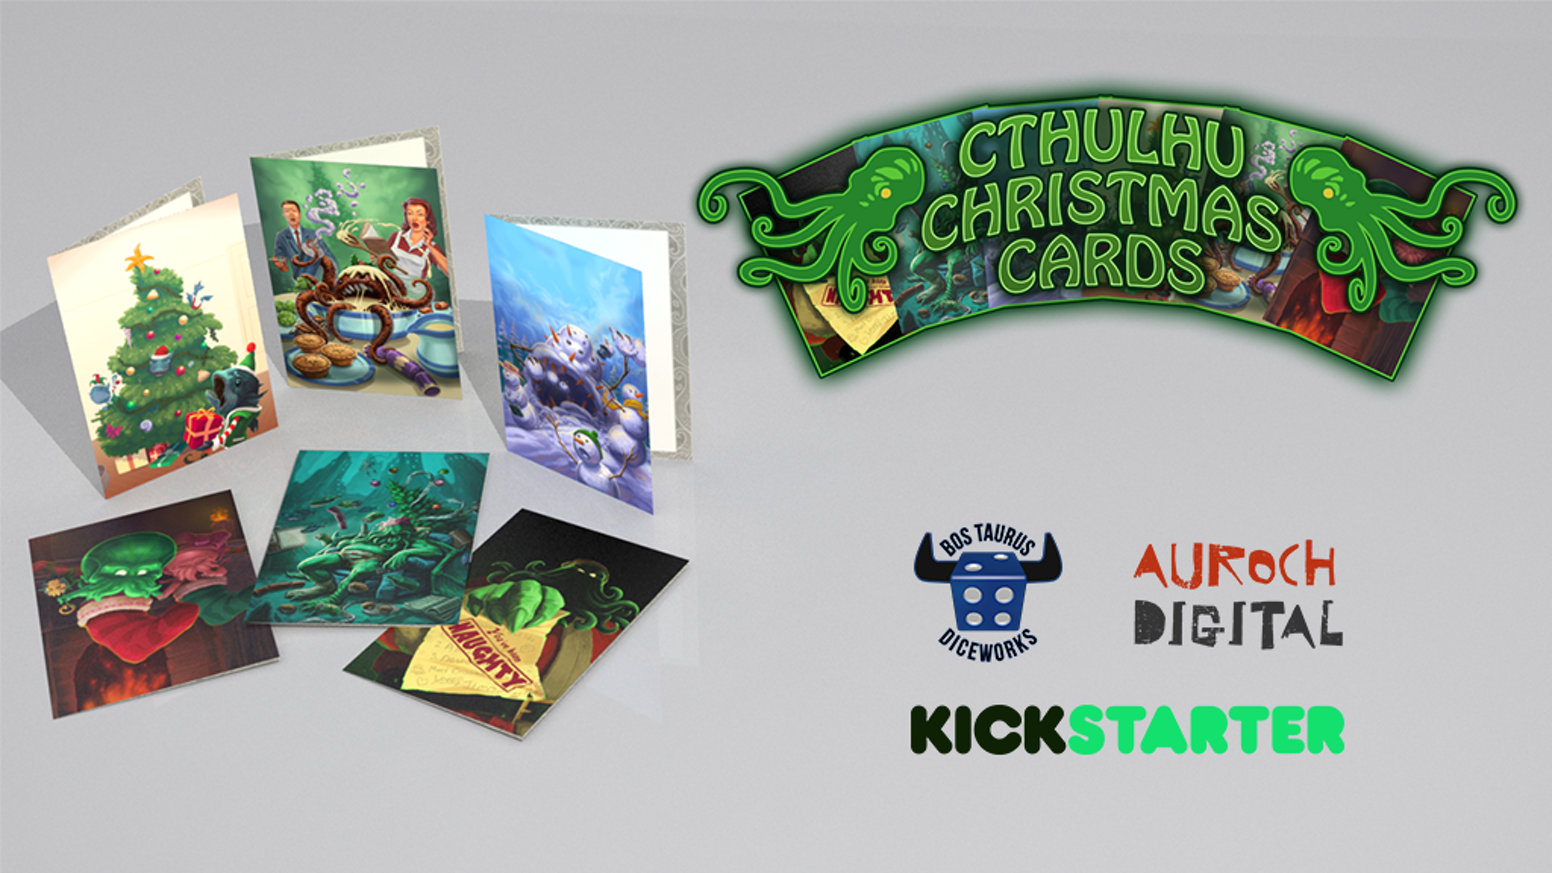 What better way to share festivities than blasphemous, eldritch cards that scream, 'Happy Holidays!' - Fully funded and coming your way!